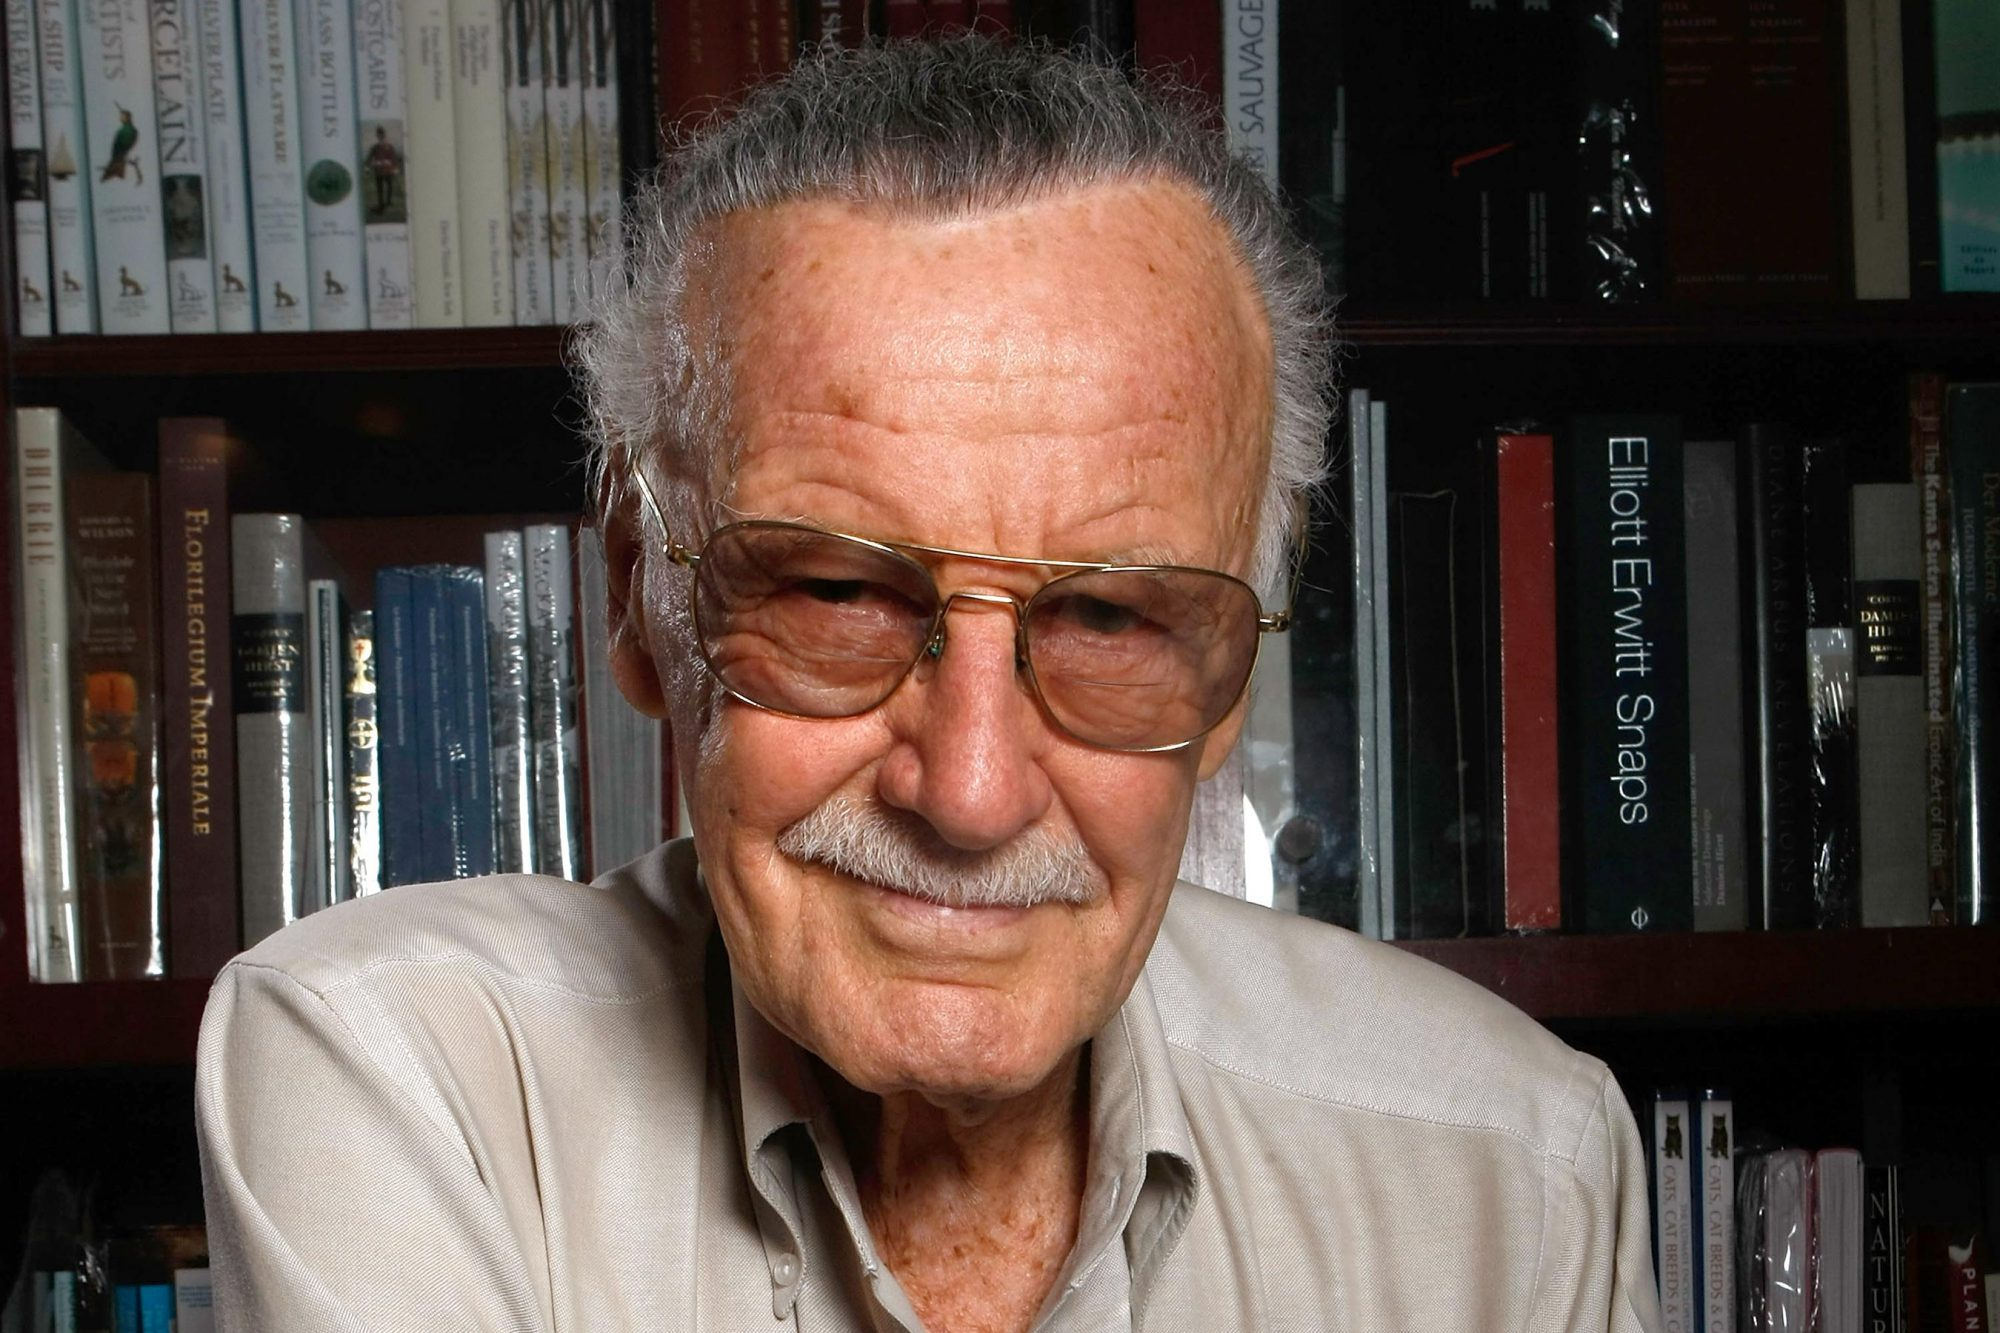 Stan Lee Portrait Session And Book Signing At Book Soup